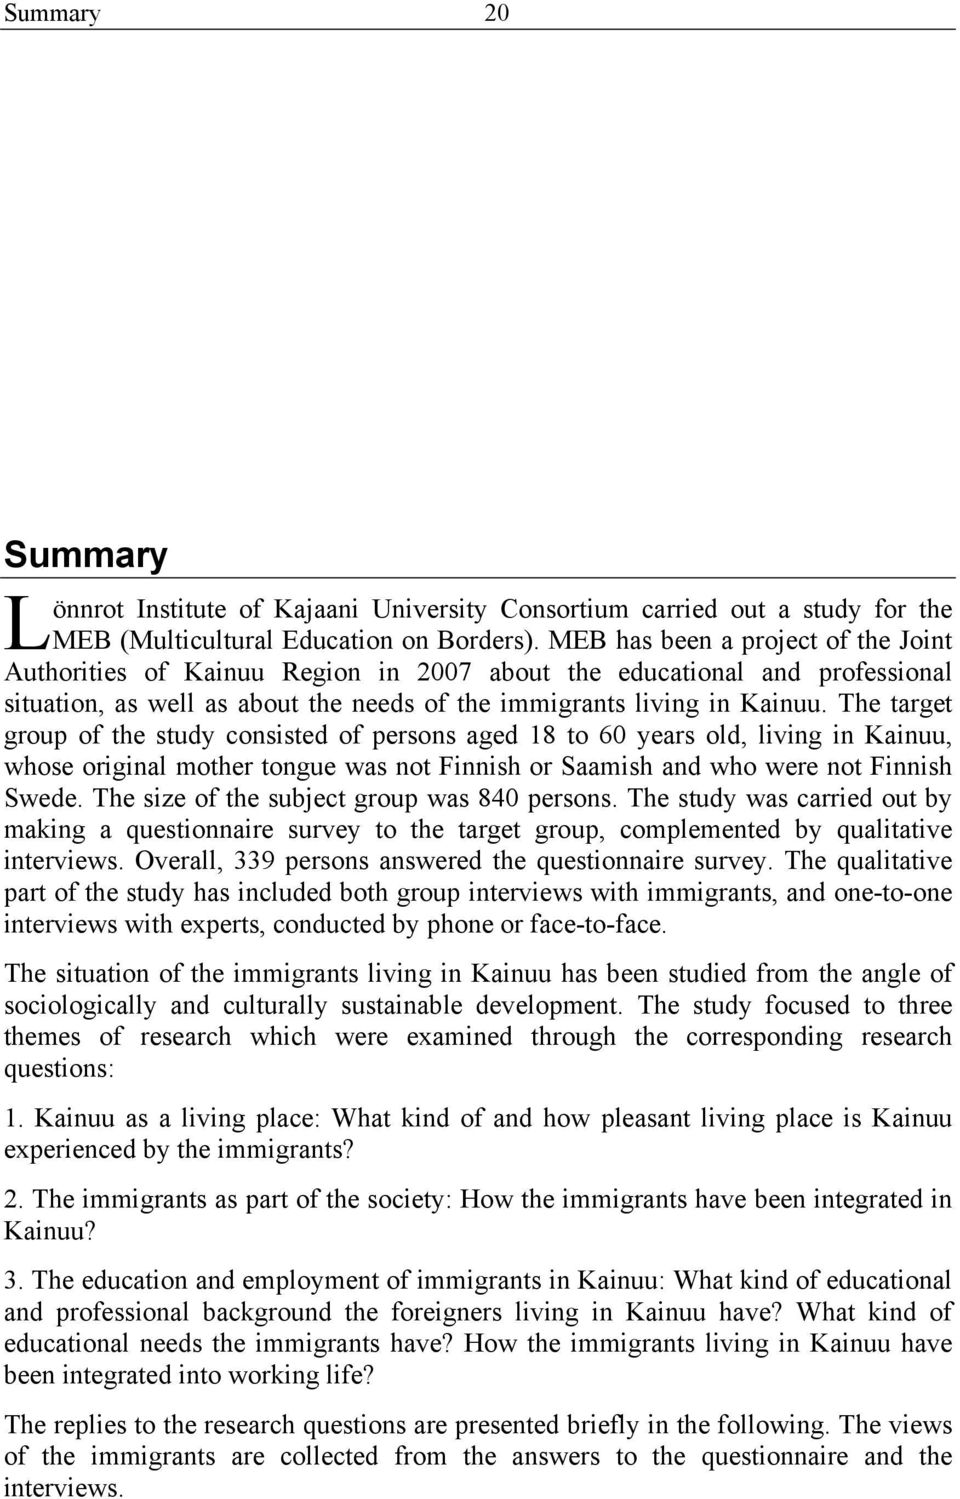 The target group of the study consisted of persons aged 18 to 60 years old, living in Kainuu, whose original mother tongue was not Finnish or Saamish and who were not Finnish Swede.